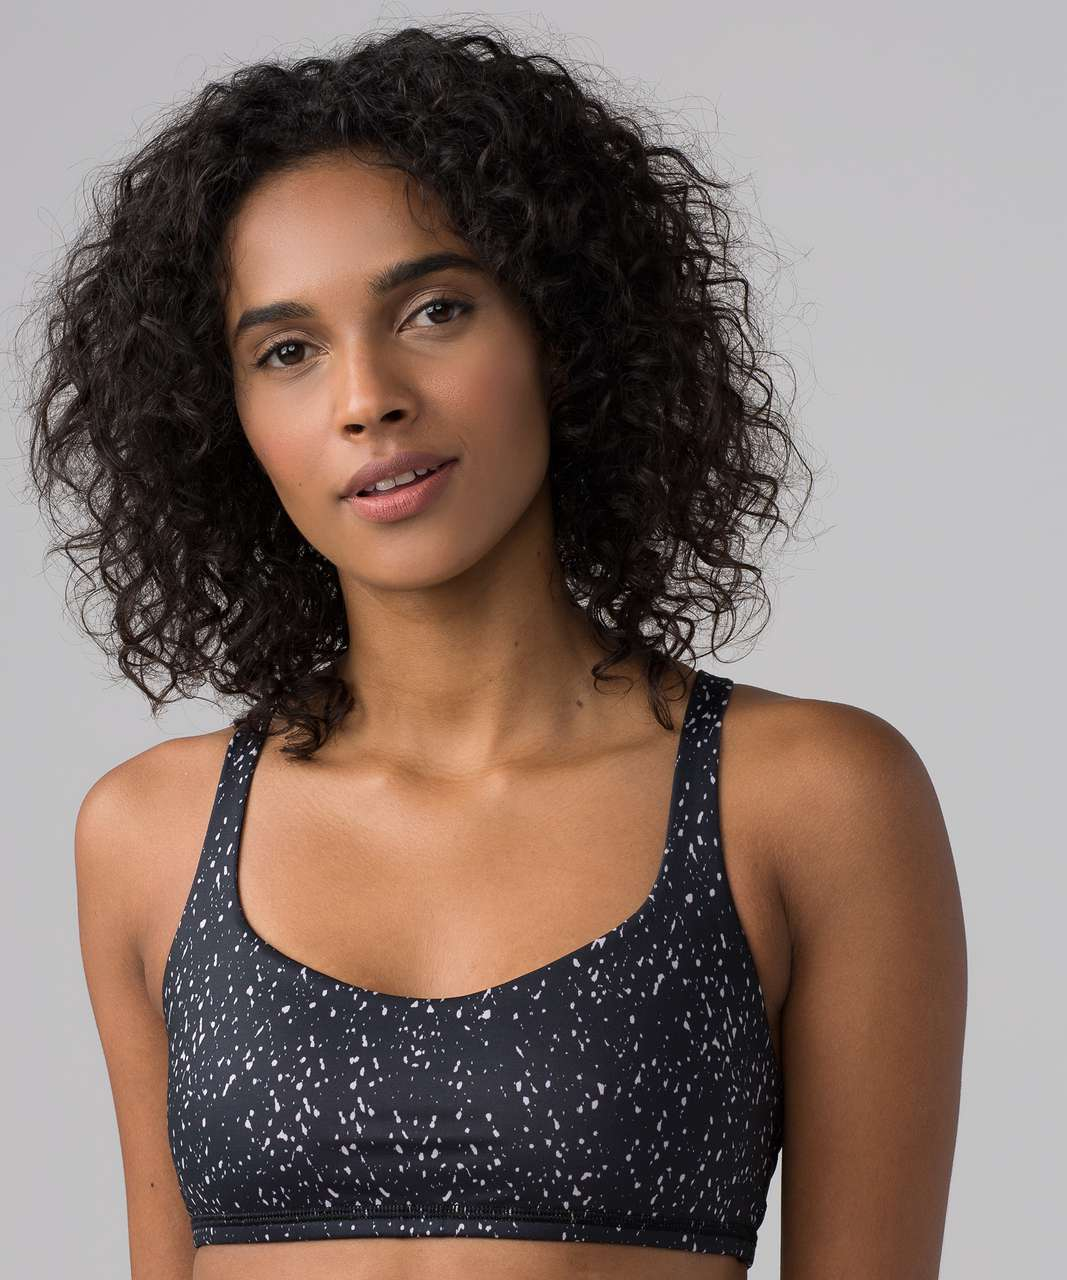 Lululemon Free To Be Bra - Butterfly Texture Mink Berry Black